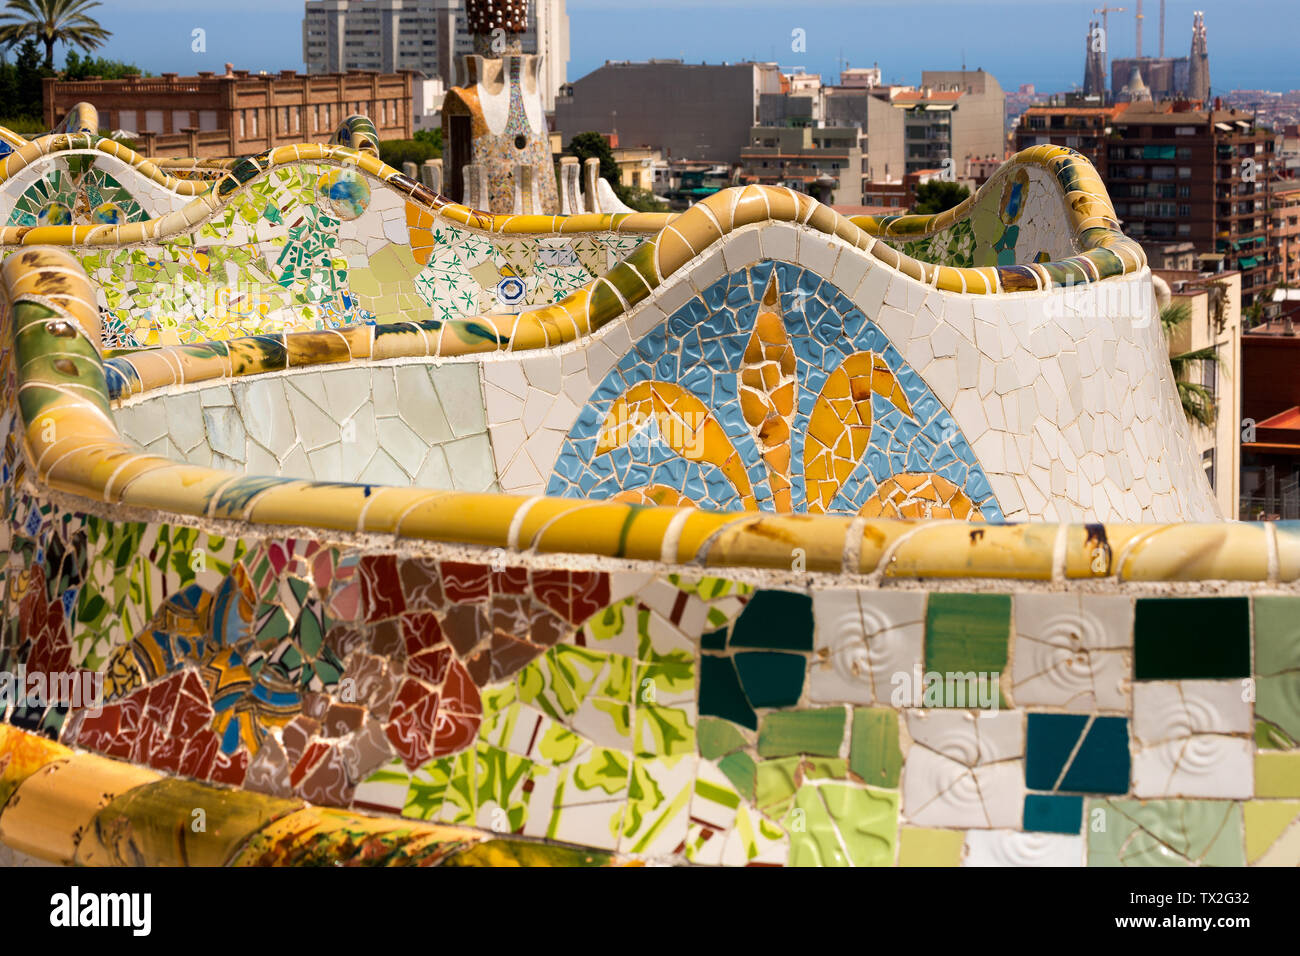 Ceramic bench and building in the Park Guell designed by the famous architect Antoni Gaudi (1852-1926). UNESCO, World Heritage Site - Stock Image